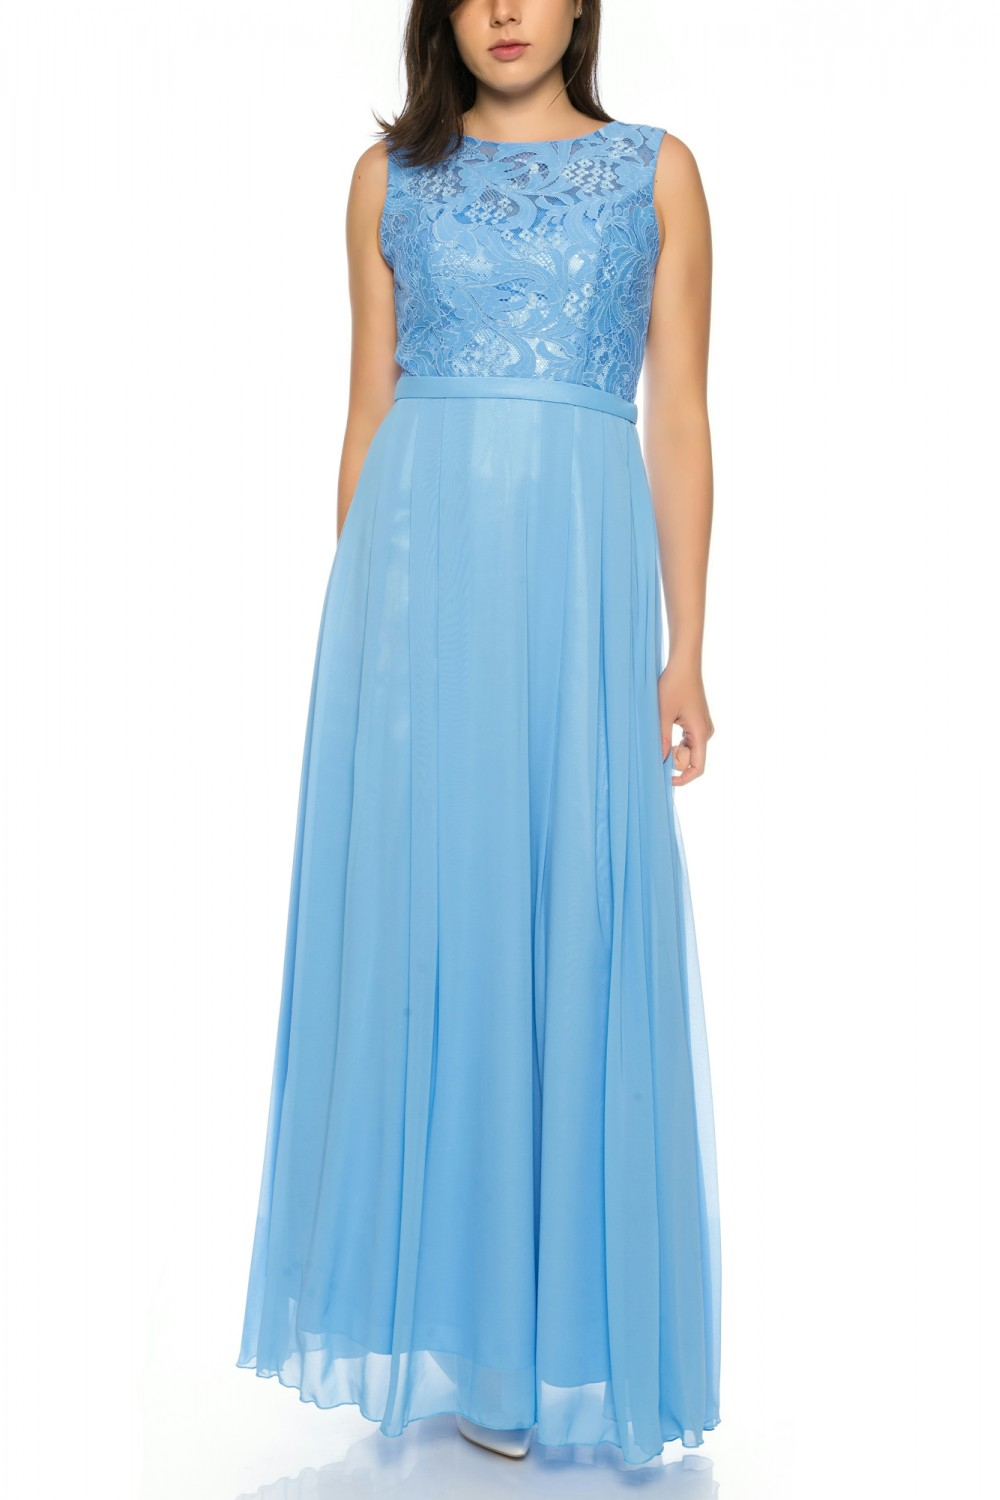 A charming evening dress made of flowing chiffon with a fine lace ...